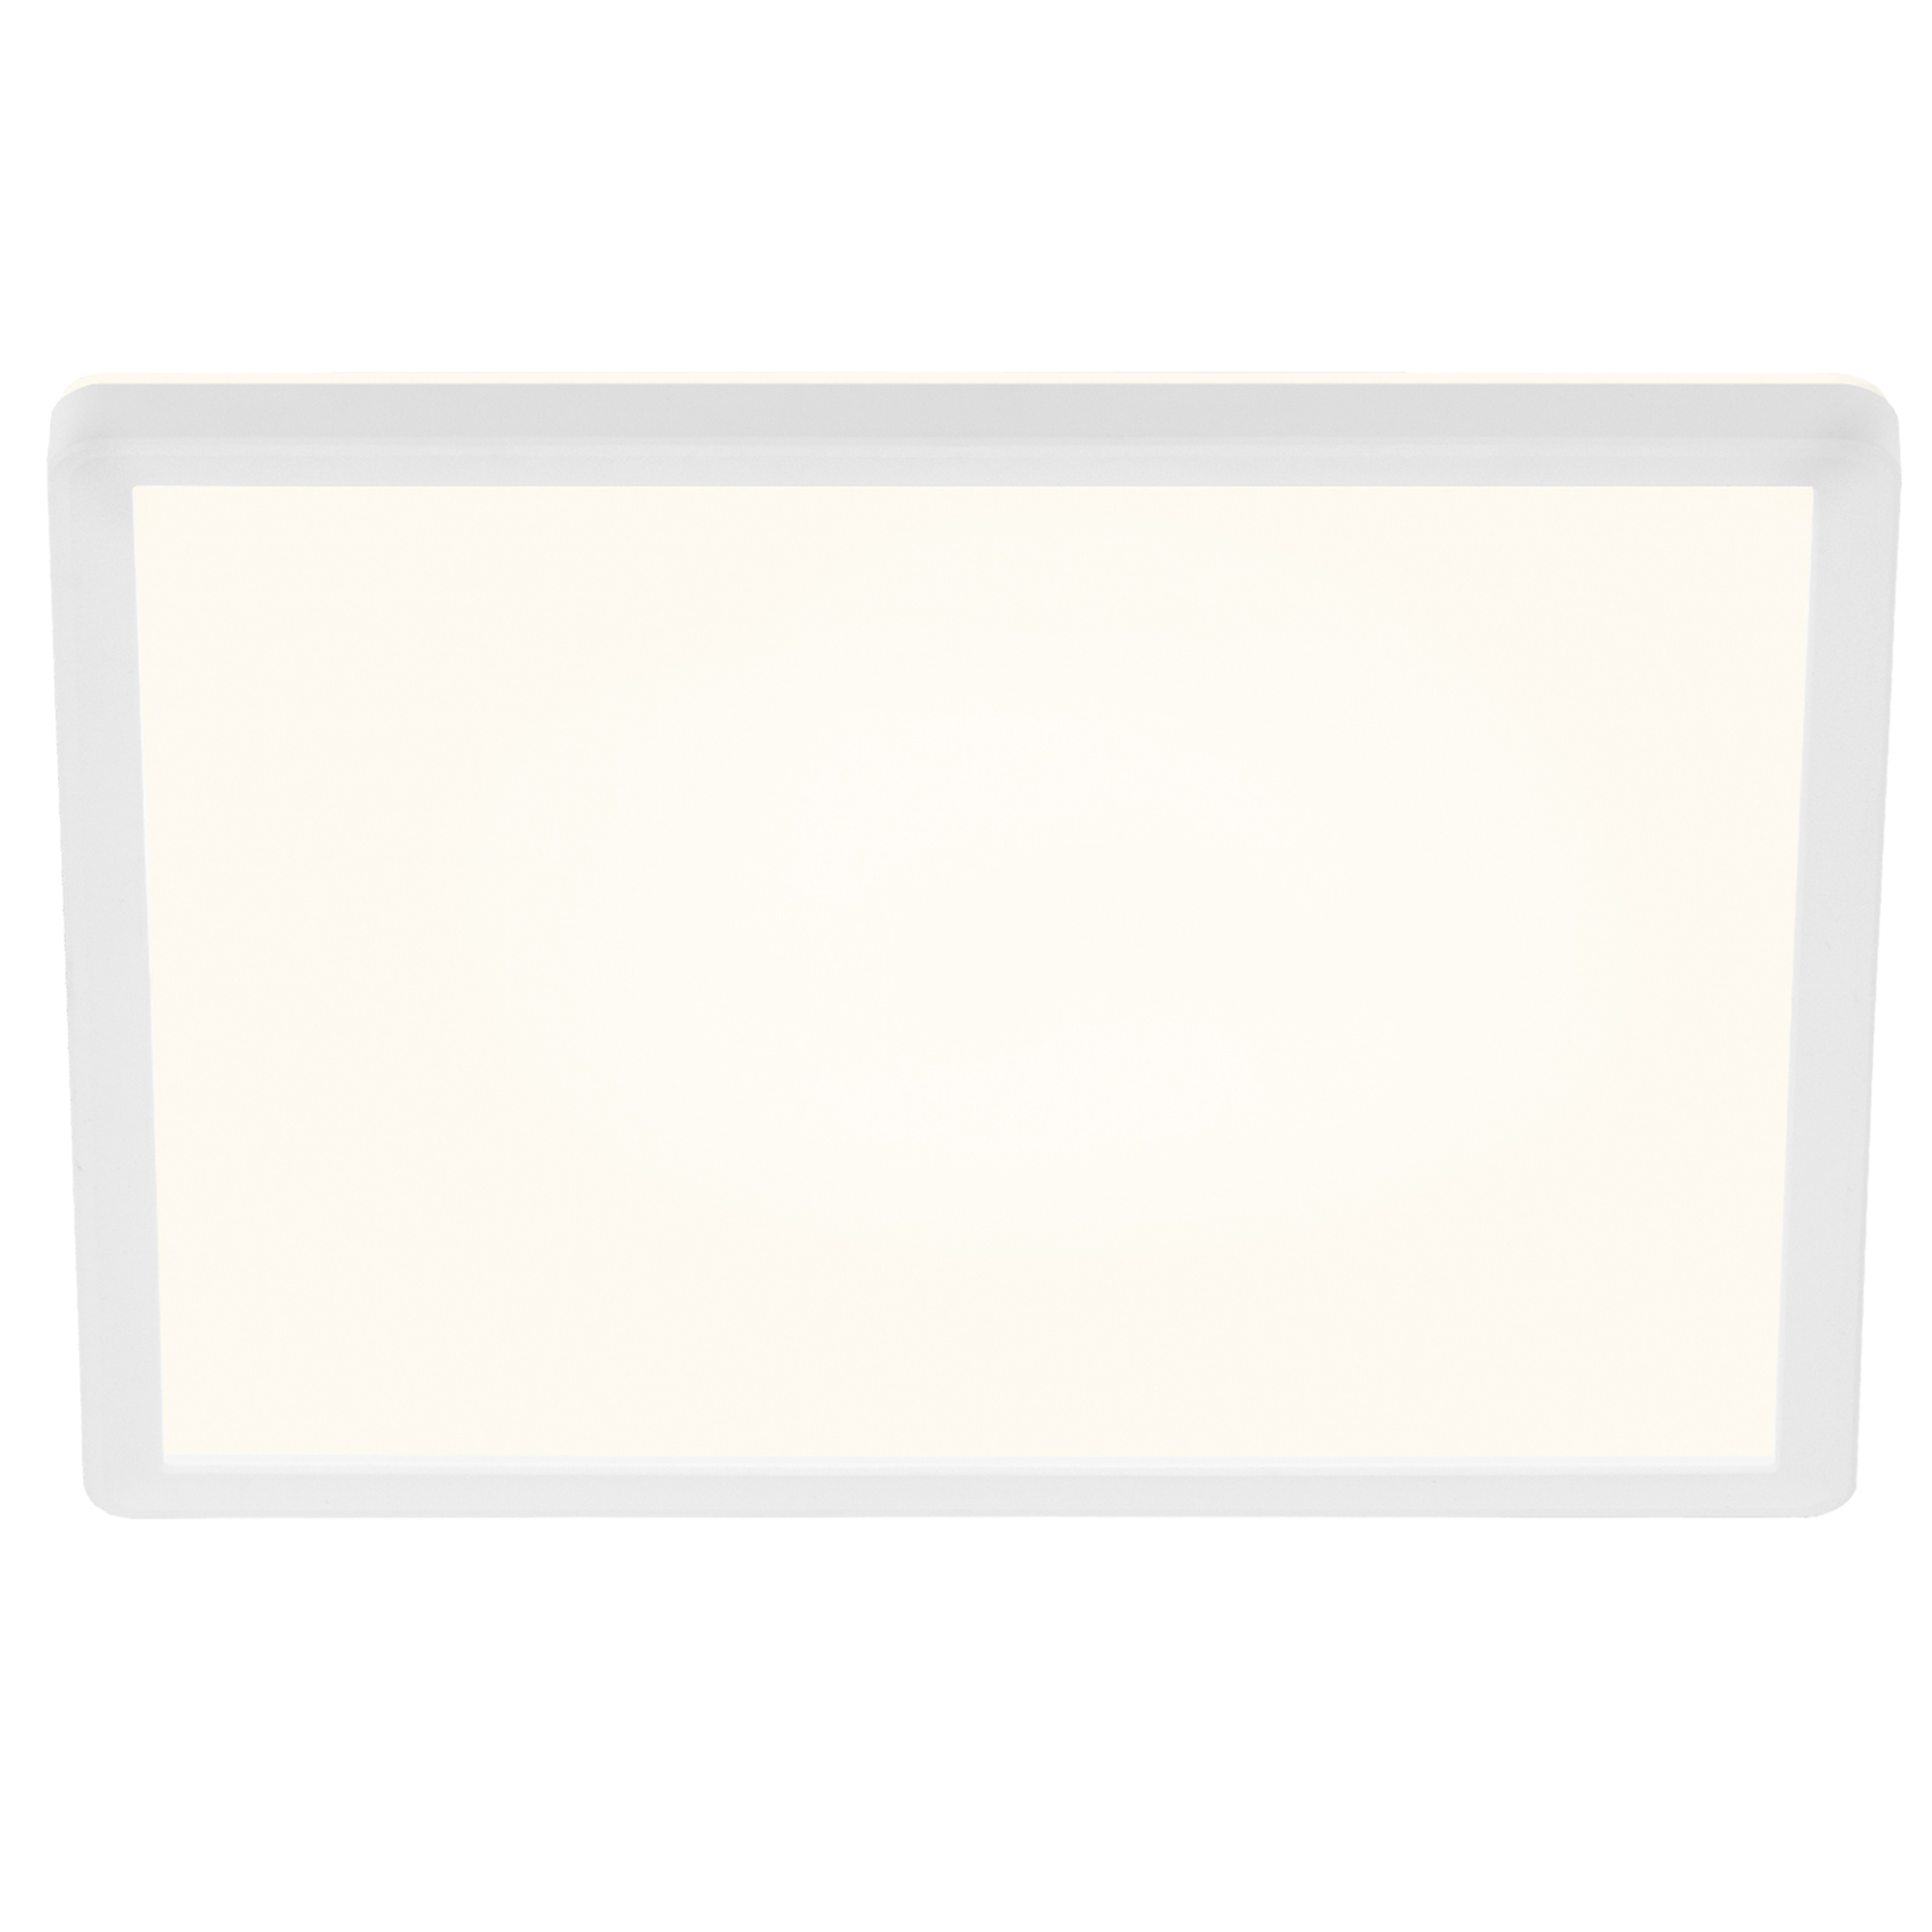 SLIM LED Panel, 42 cm, 3000 LUMEN, 22 WATT, Weiss